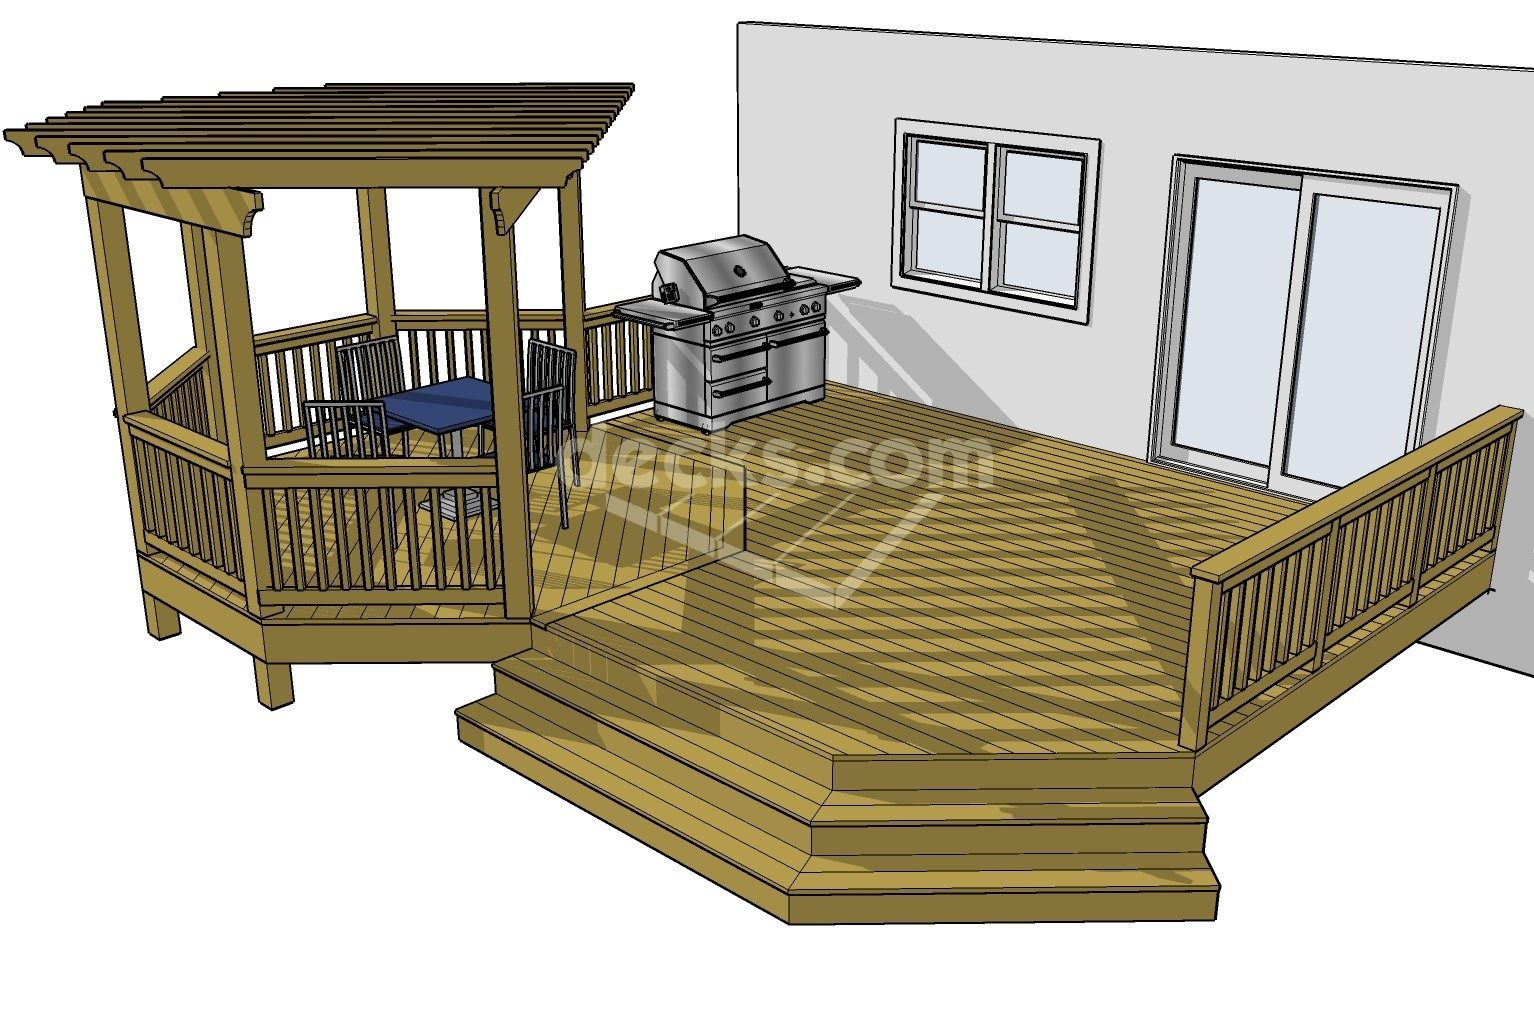 10 tips for designing a great deck. Black Bedroom Furniture Sets. Home Design Ideas